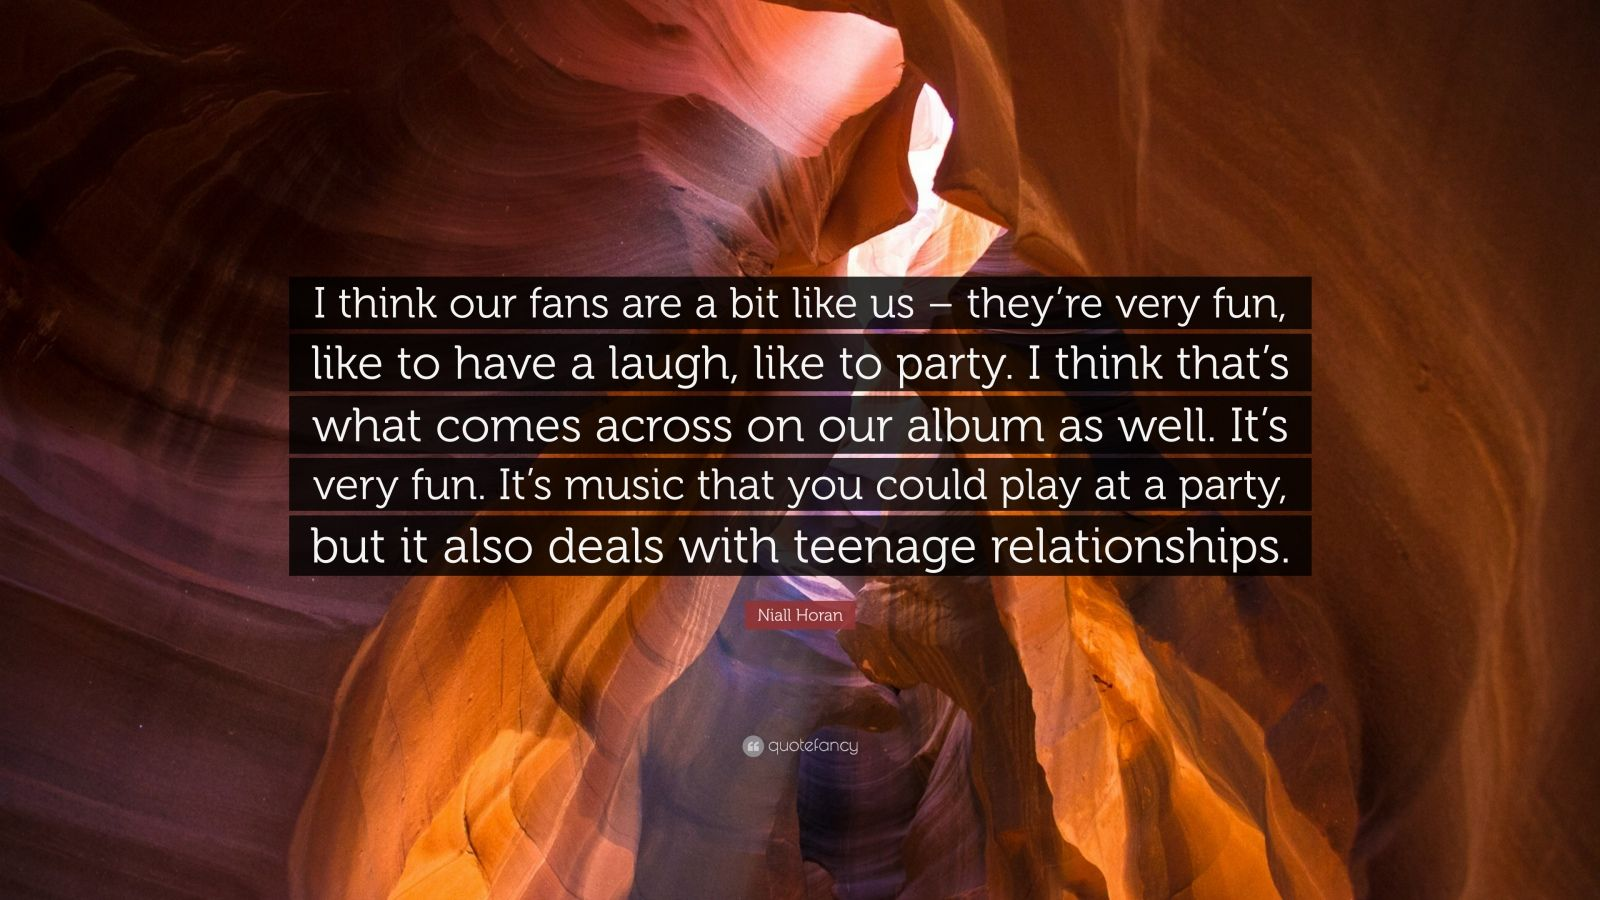 """Niall Horan Quote: """"I think our fans are a bit like us – they're very fun, like to have a laugh, like to party. I think that's what comes across on our album as well. It's very fun. It's music that you could play at a party, but it also deals with teenage relationships."""""""